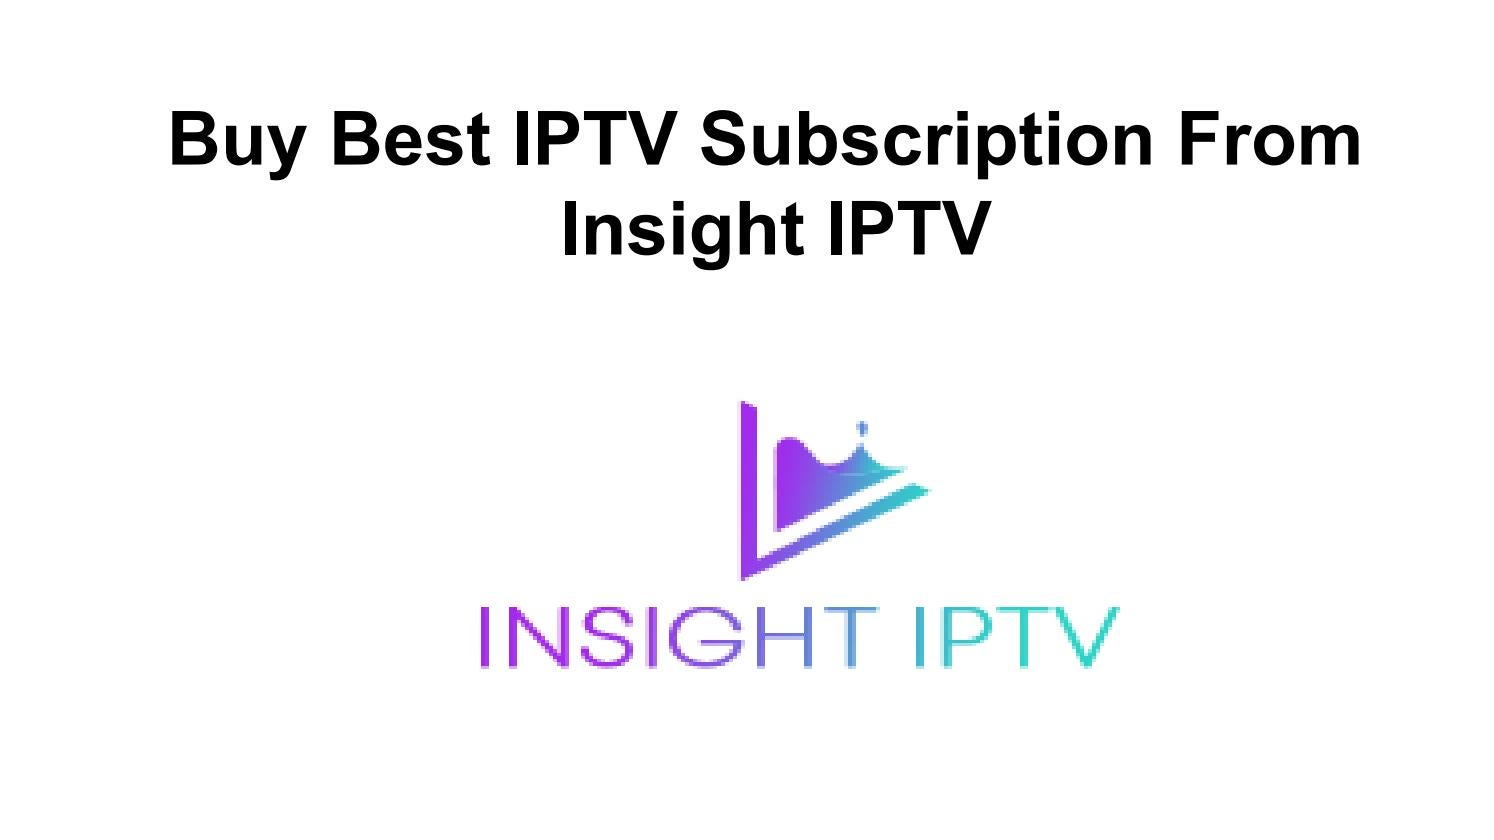 Buy Best IPTV Subscription From Insight IPTV by insightiptv - issuu